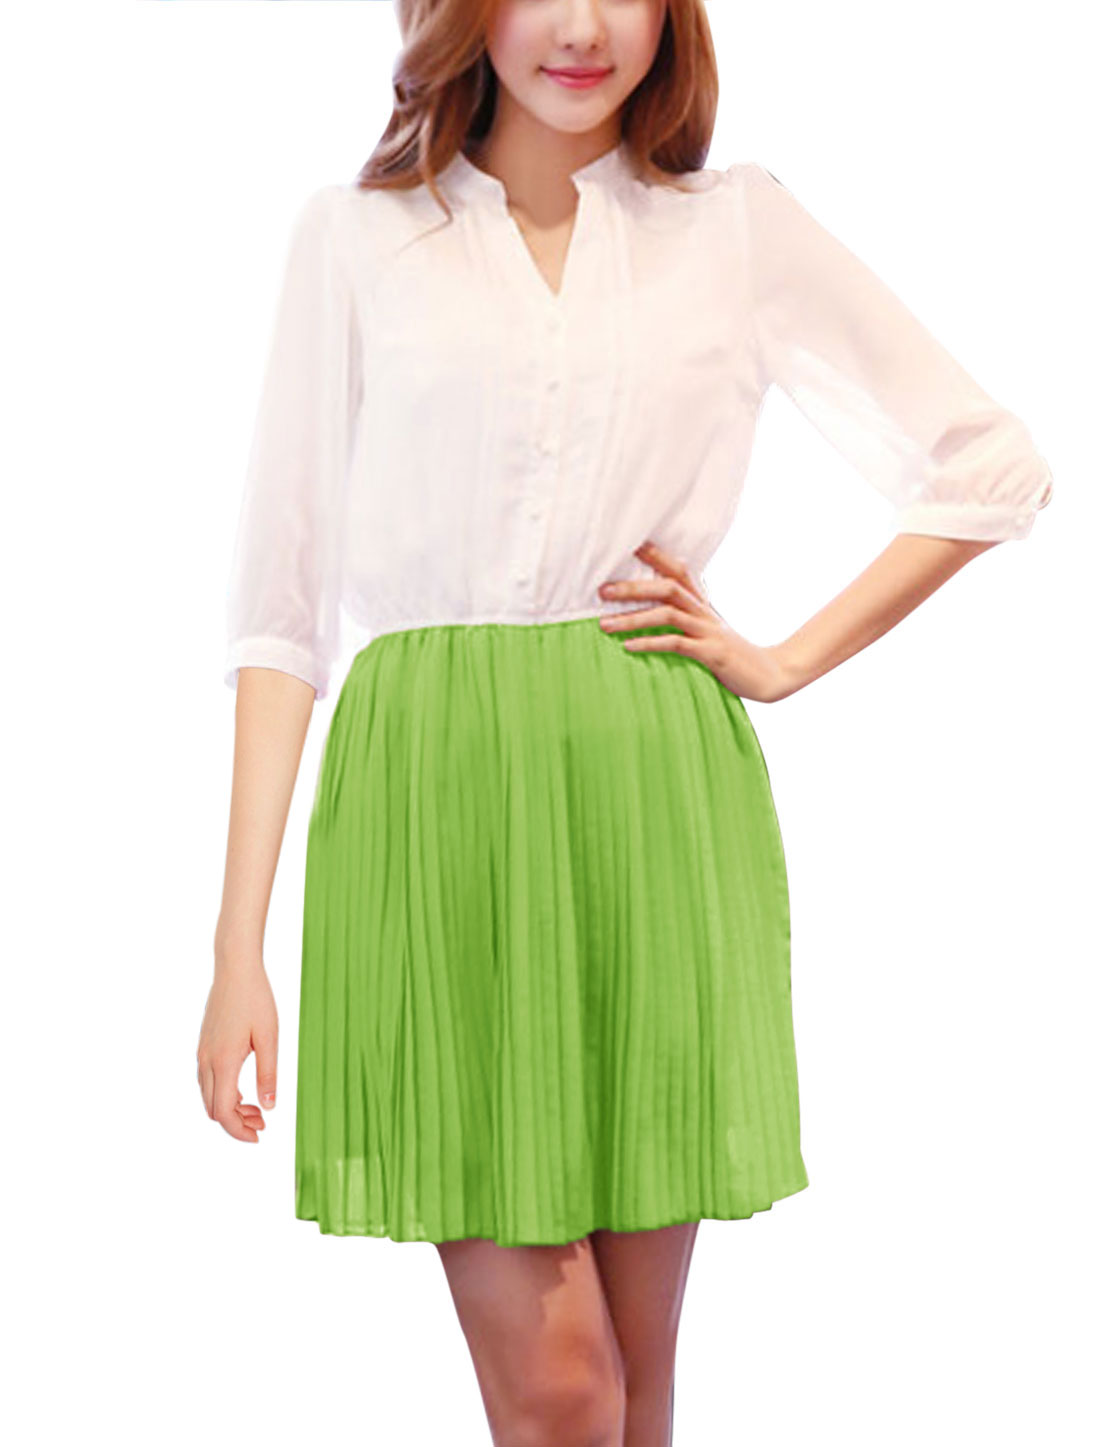 Lady Stand Collar 1/2 Placket Pleated Dress White Apple Green S